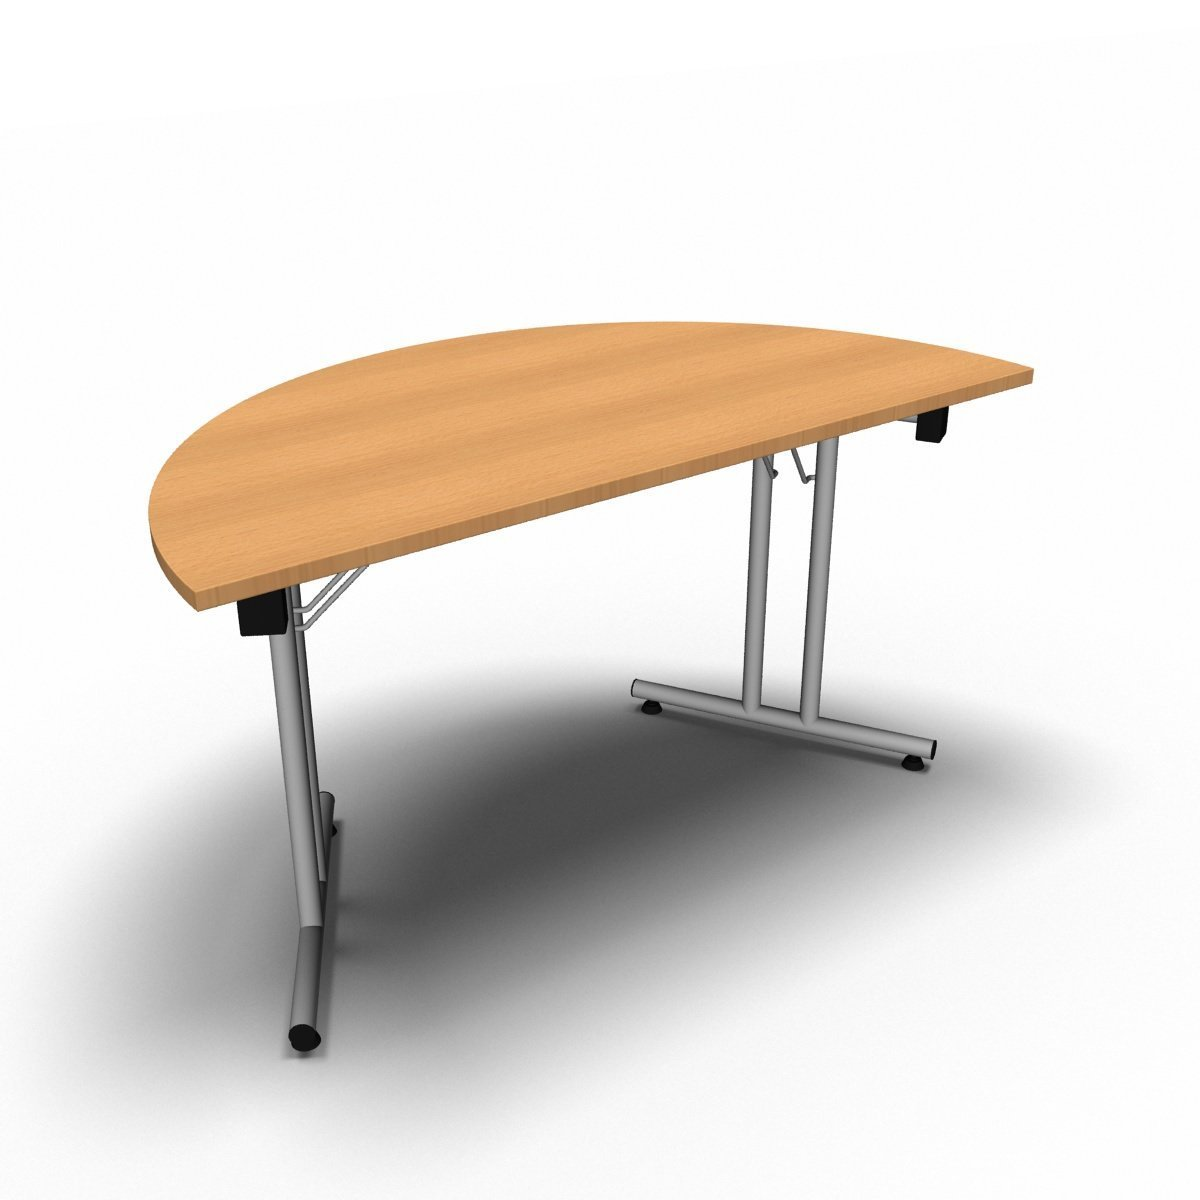 Table 1400 x 700 x 730mm / Semi Circular / Beech Synergy Folding Tables